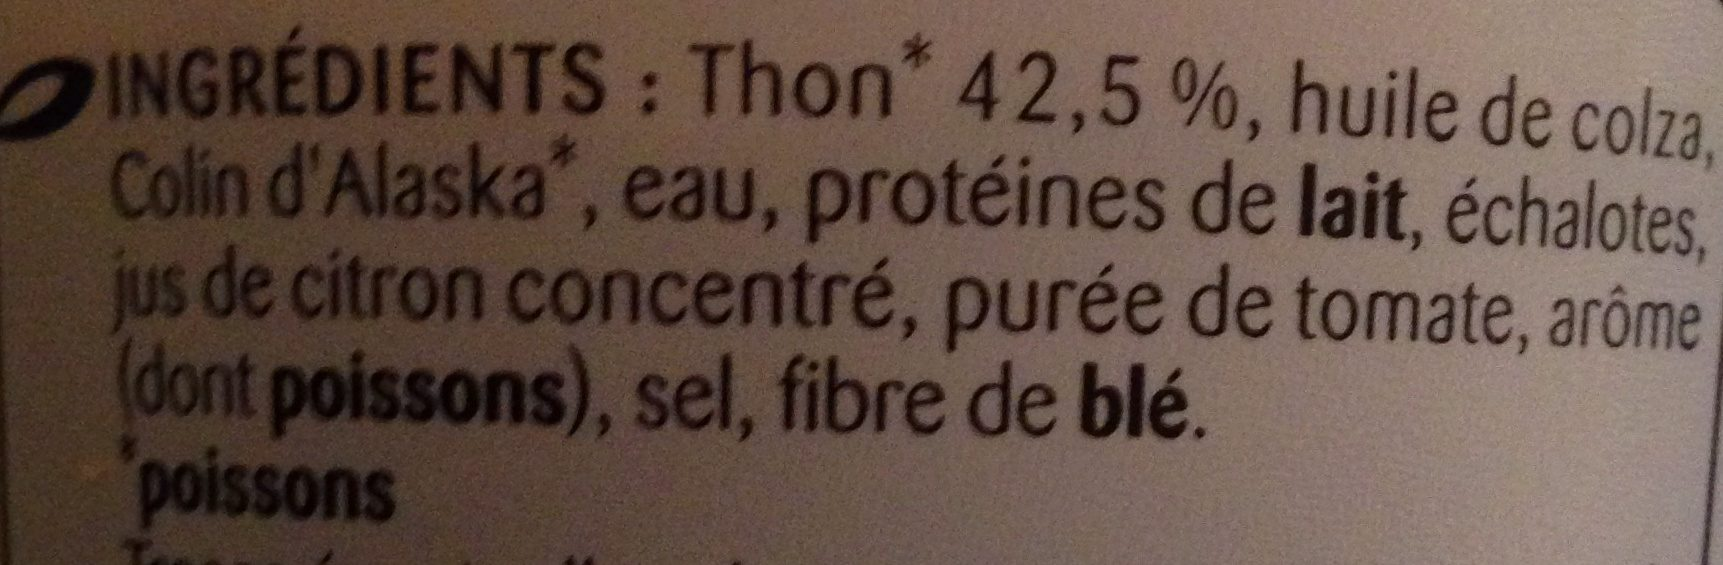 Rillettes de thon - Ingredients